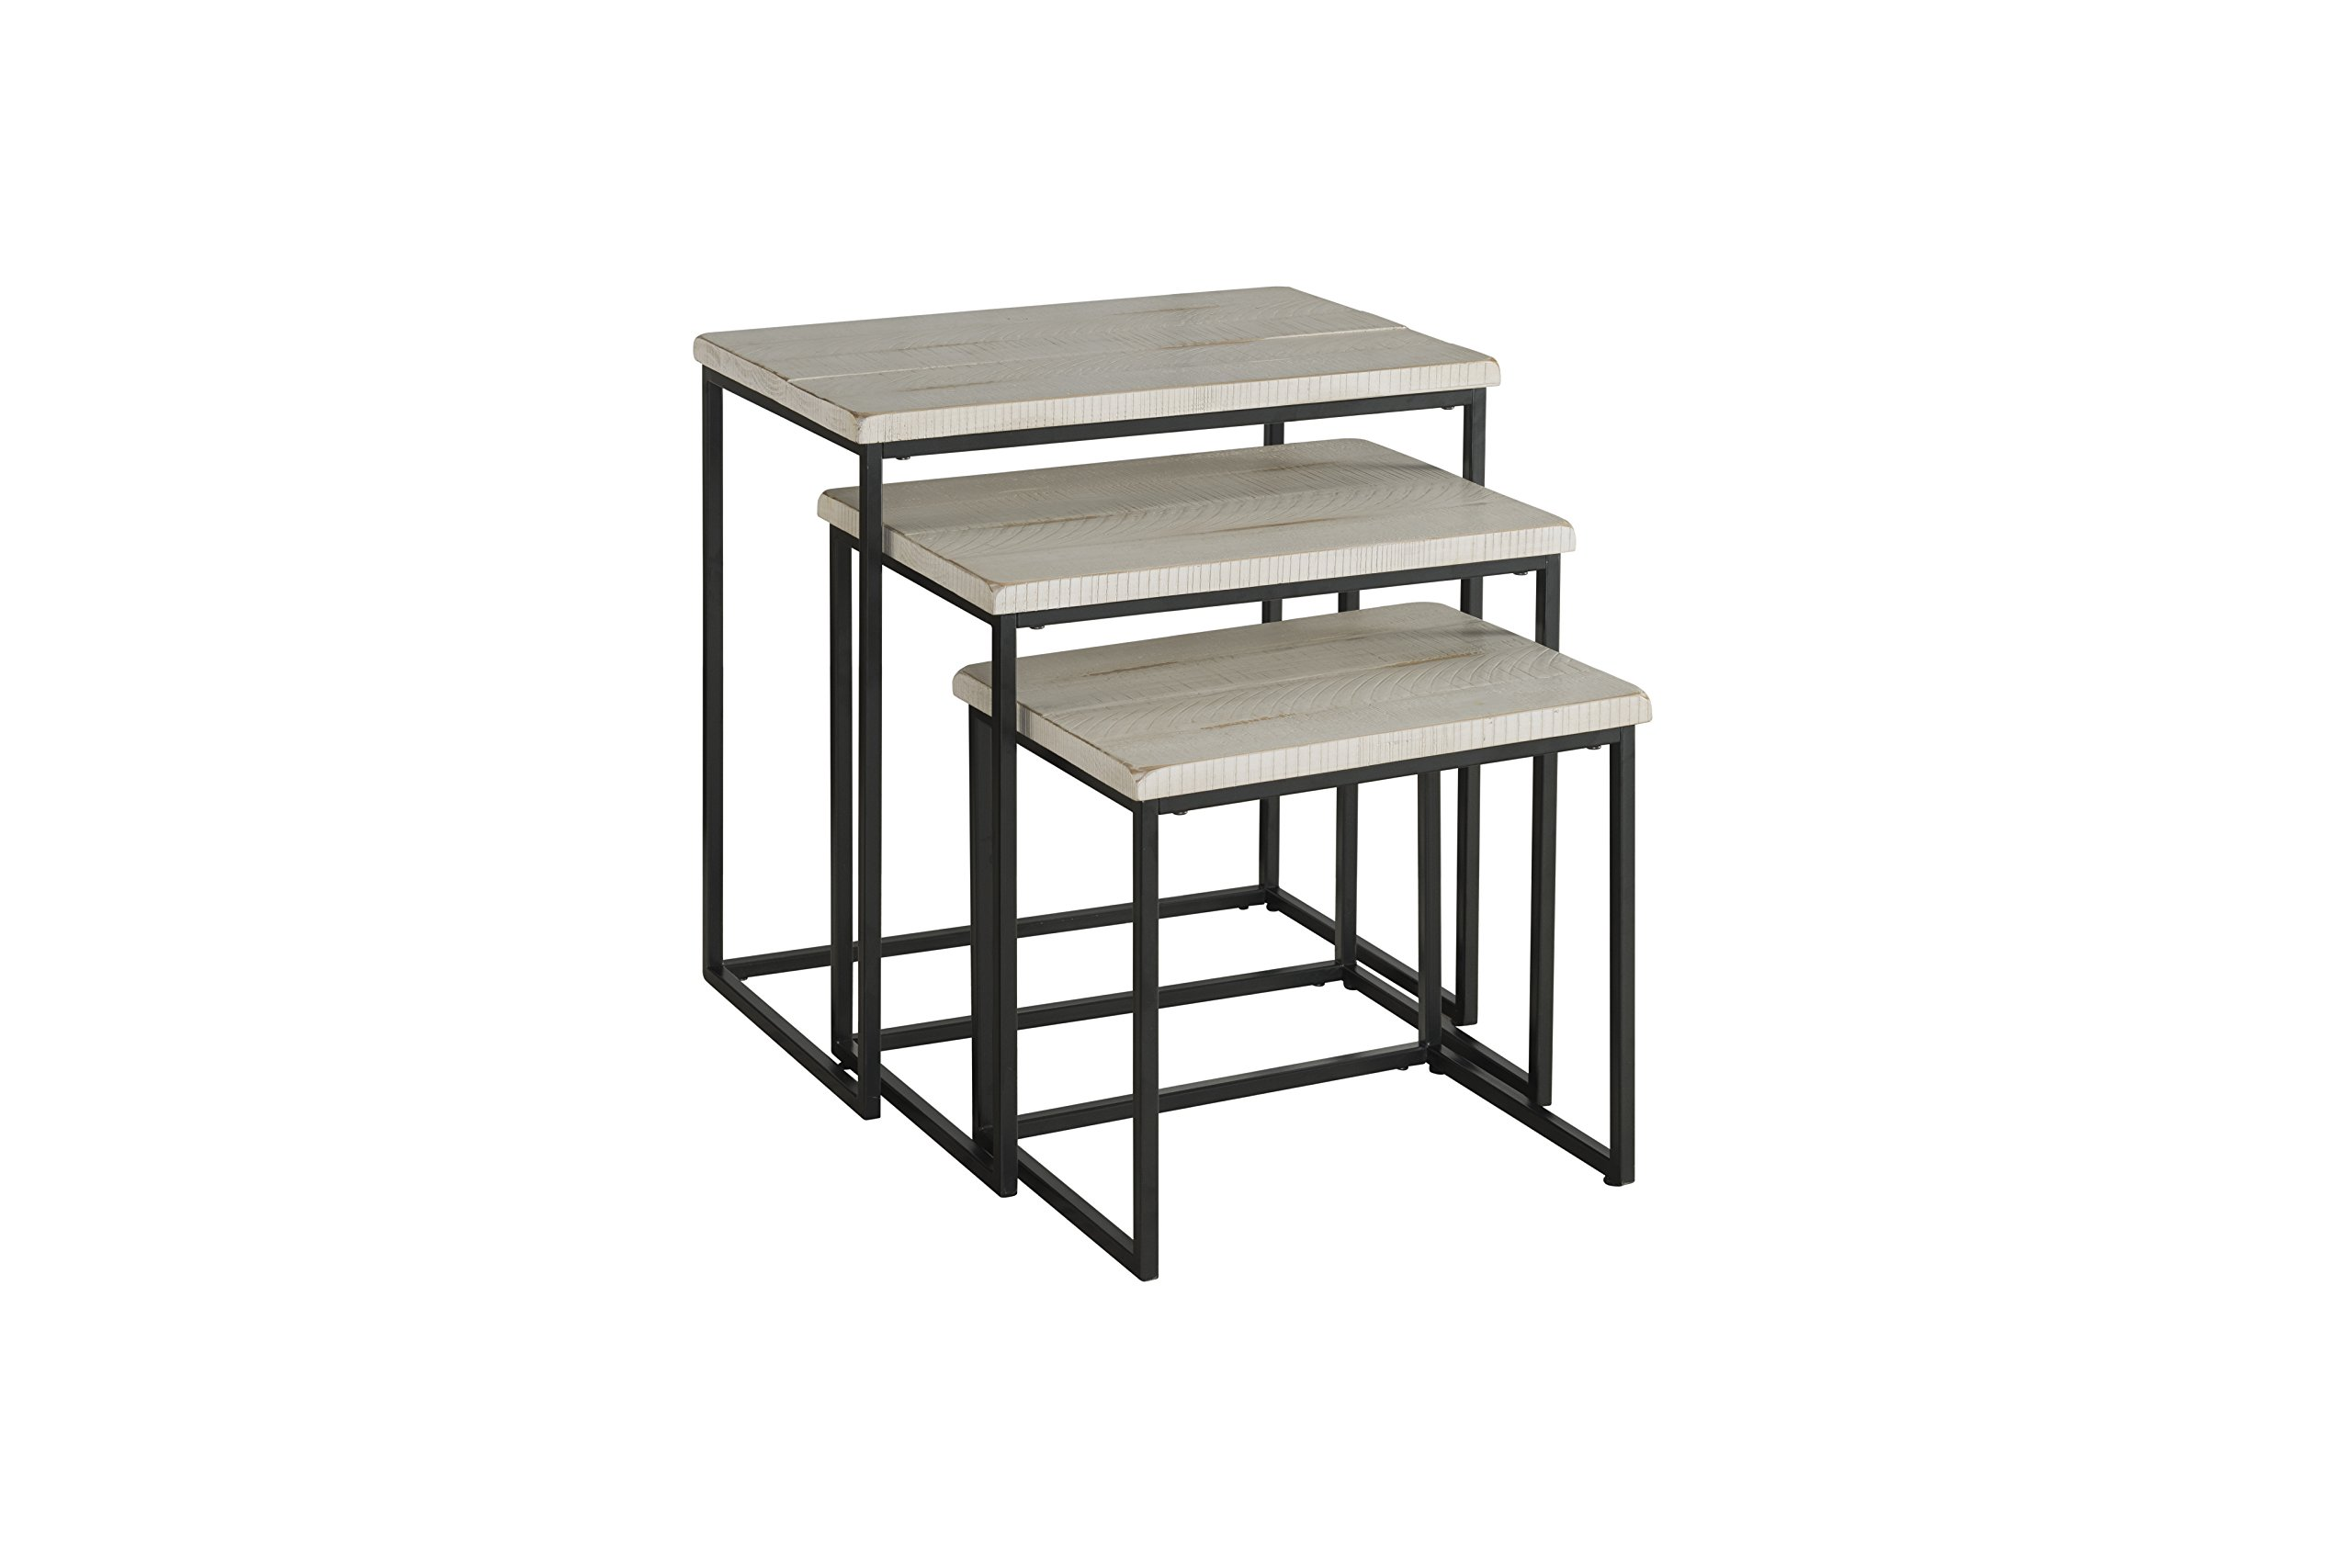 Martin Svensson Home Rustic Collection Solid Wood & Metal 3 Piece Nesting Table, Antique White by Martin Svensson Home